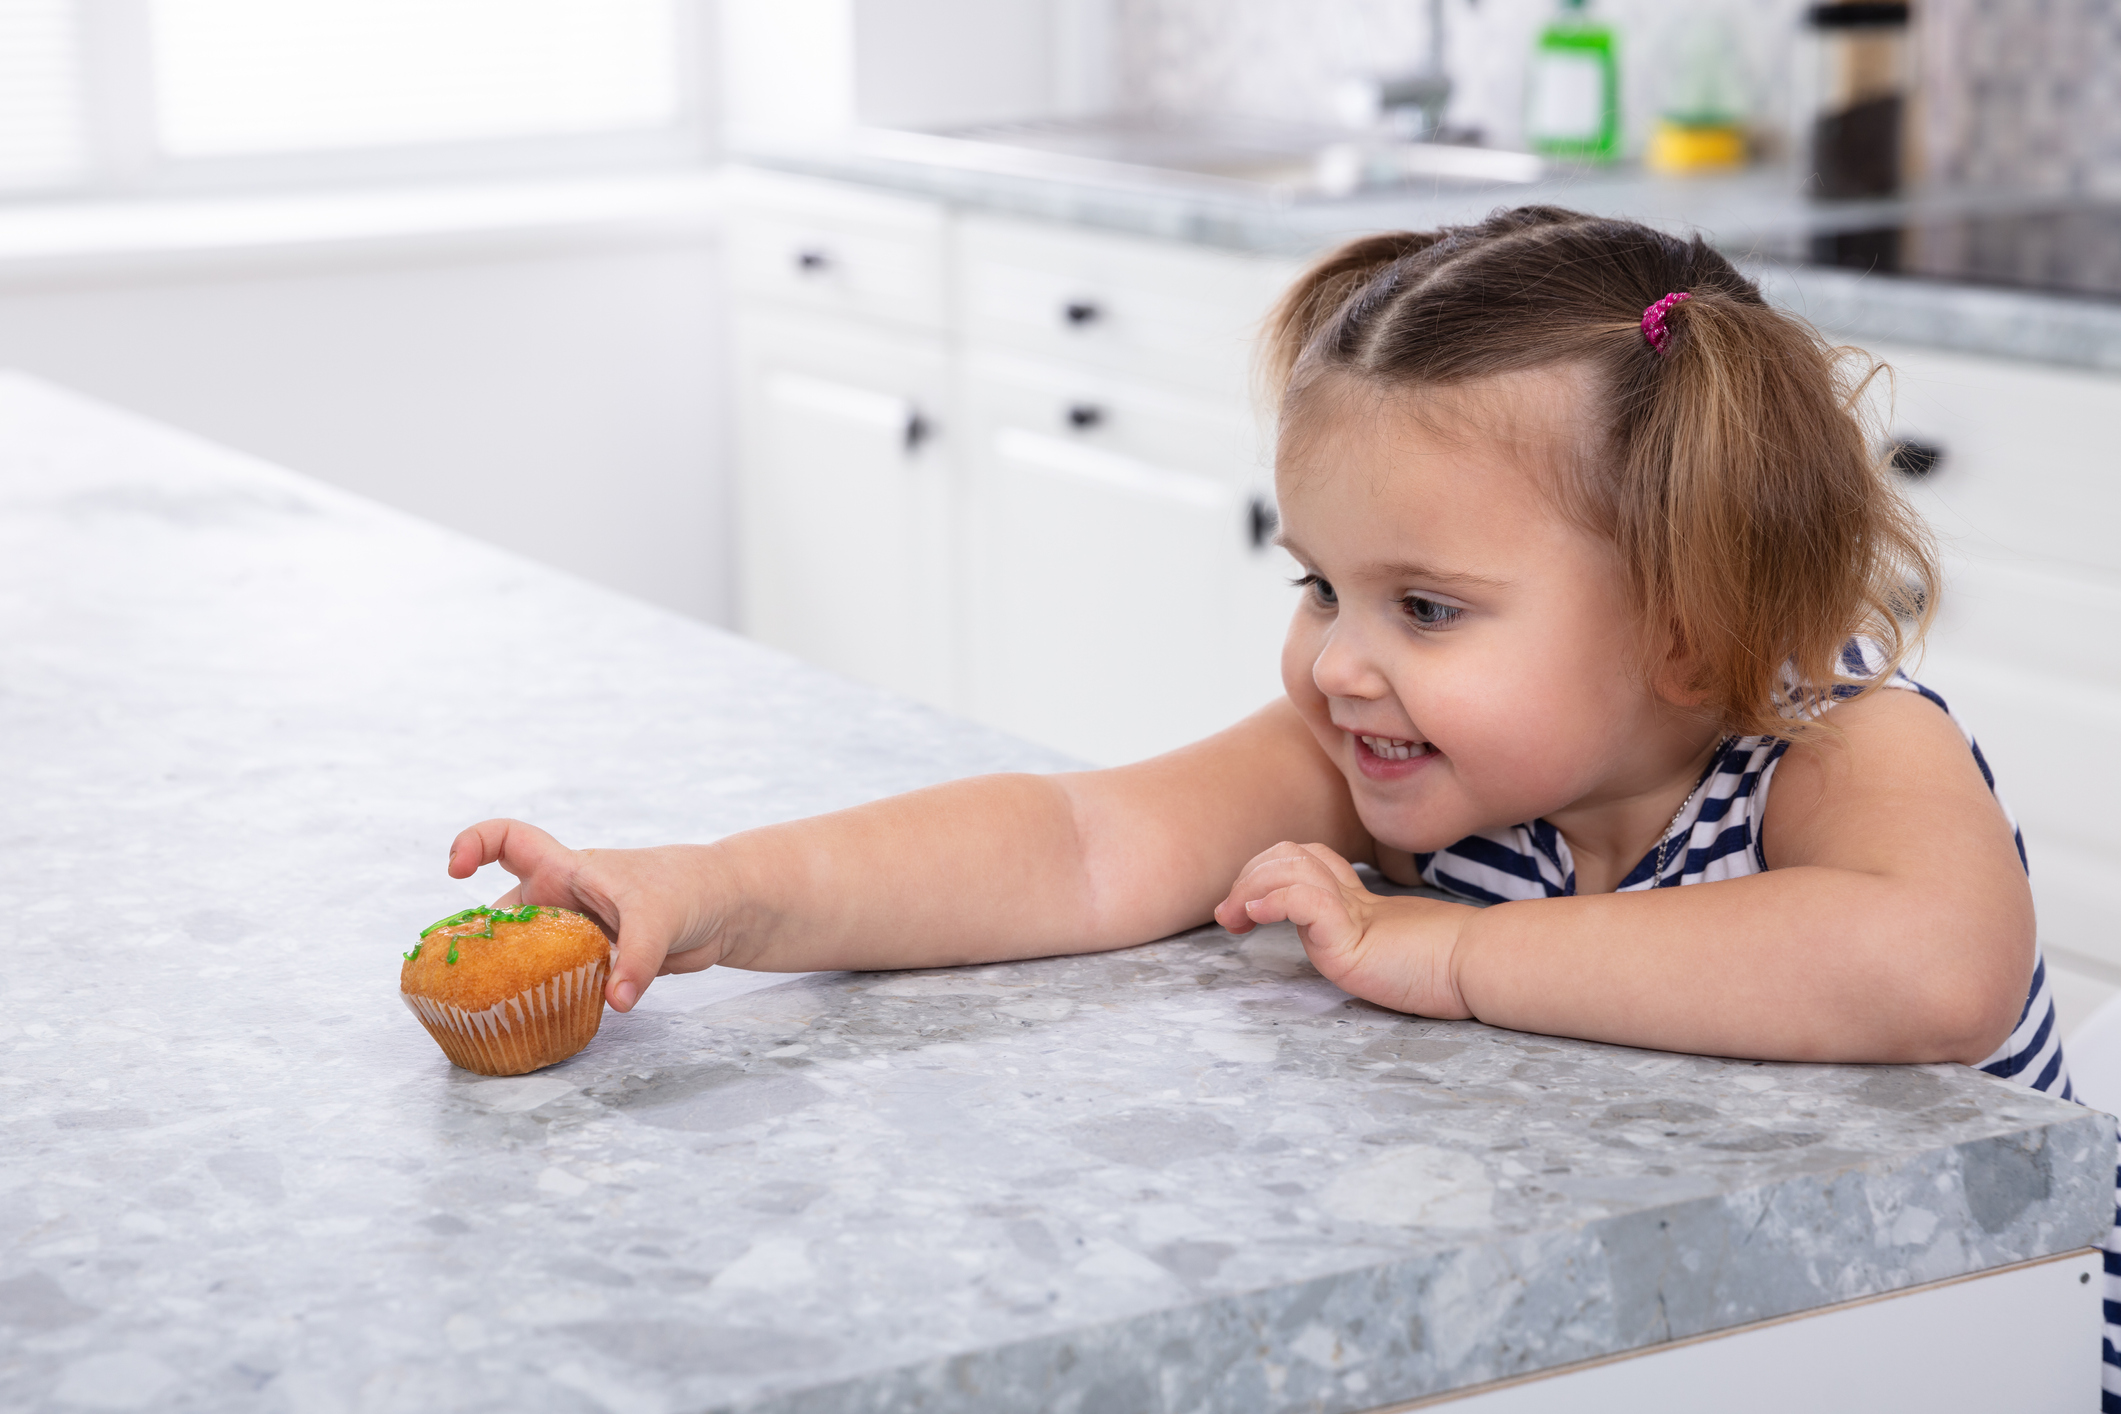 Girl's Hand Reaching For Cupcake On Kitchen Counter